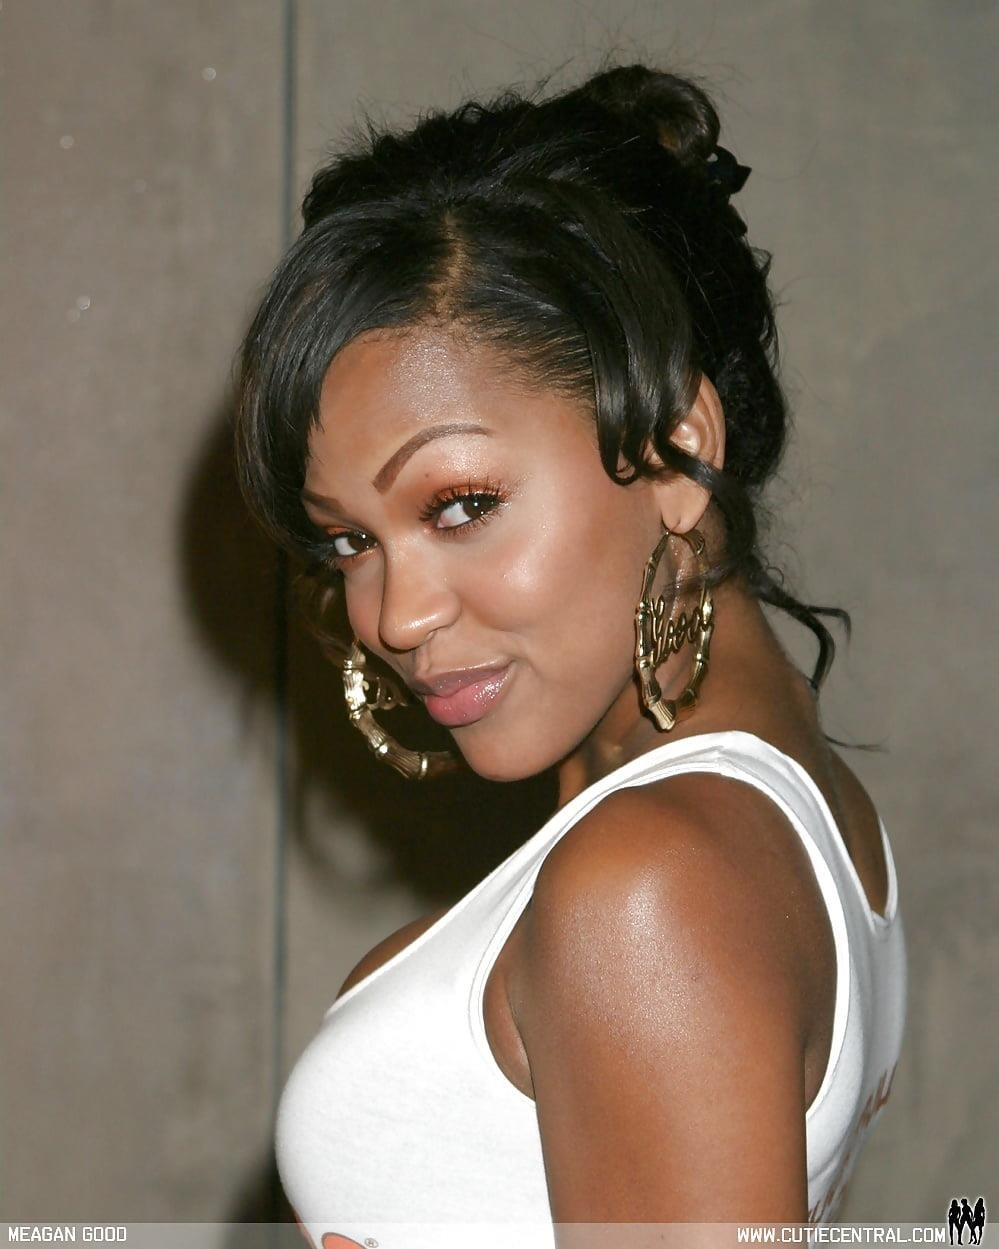 Meagan good nude pictures-8062